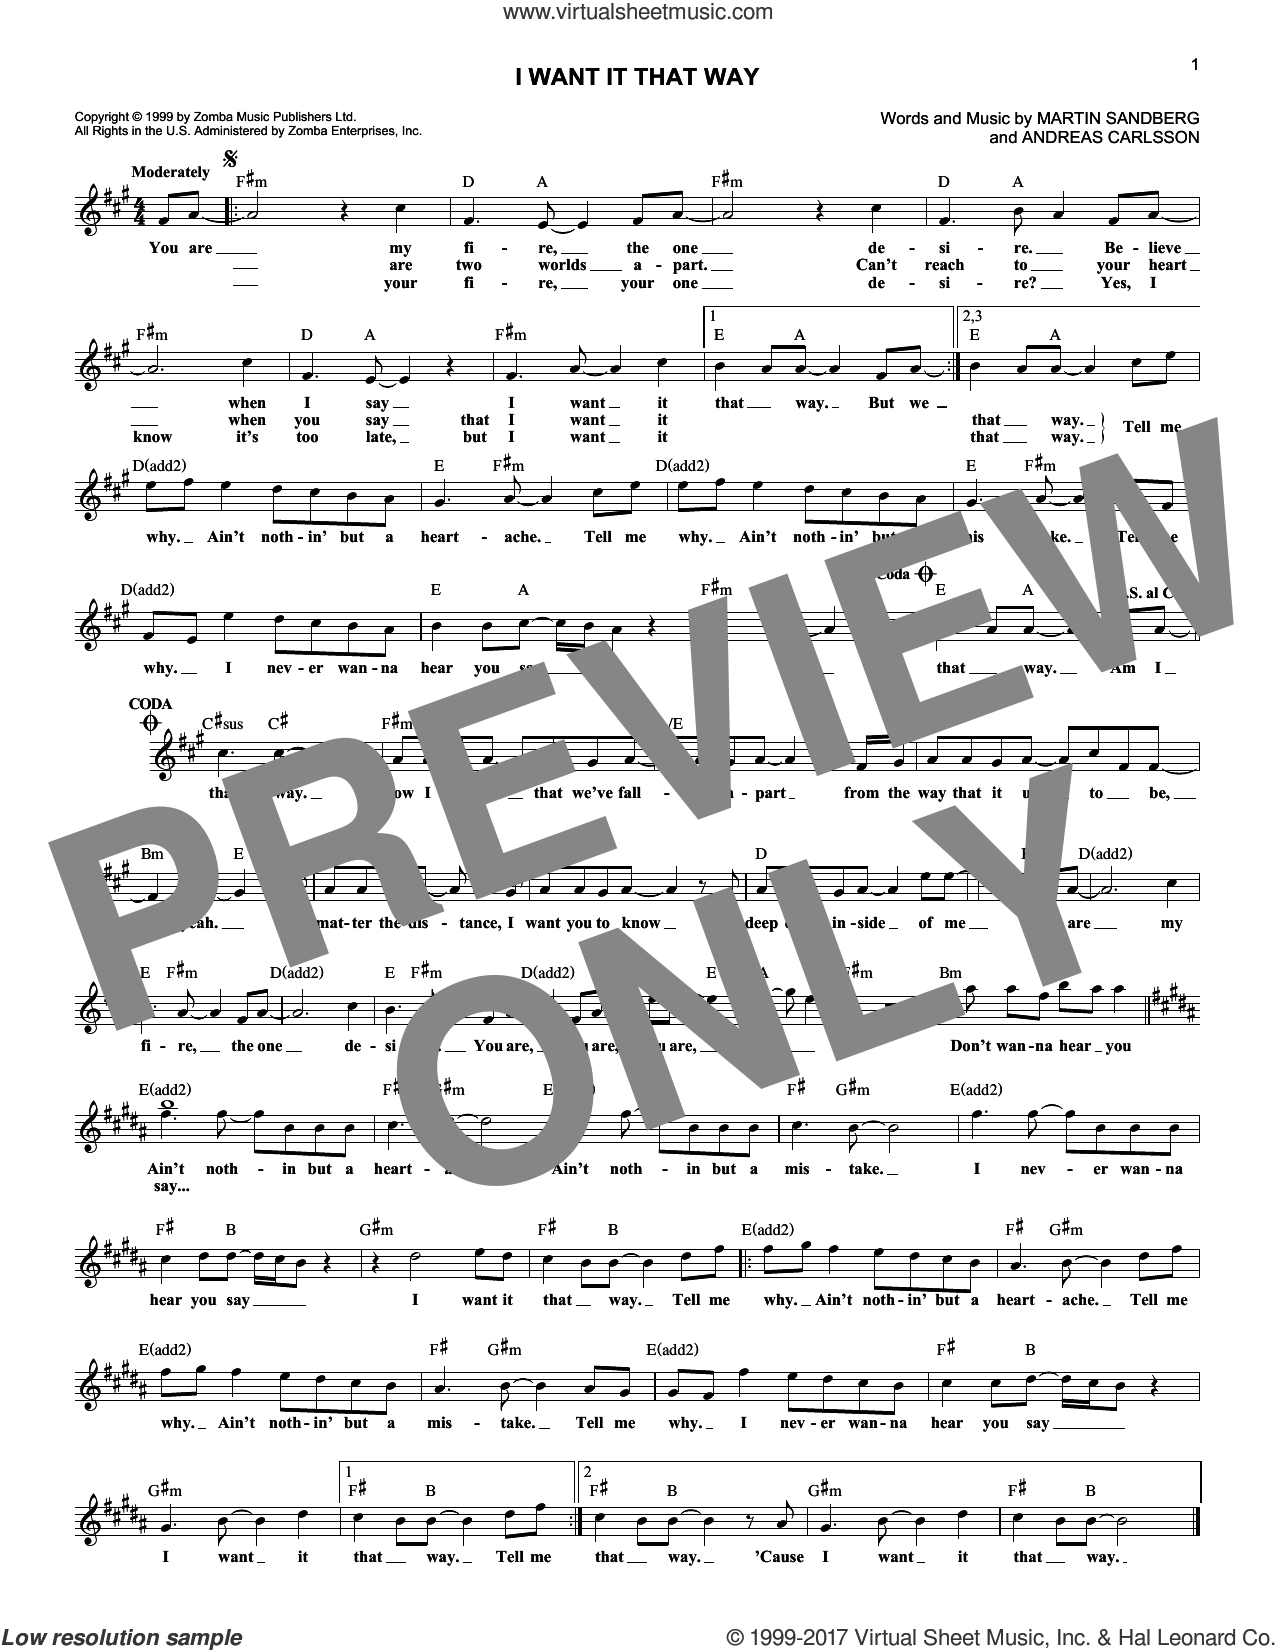 I Want It That Way sheet music for voice and other instruments (fake book) by Backstreet Boys, Andreas Carlsson and Martin Sandberg, intermediate skill level